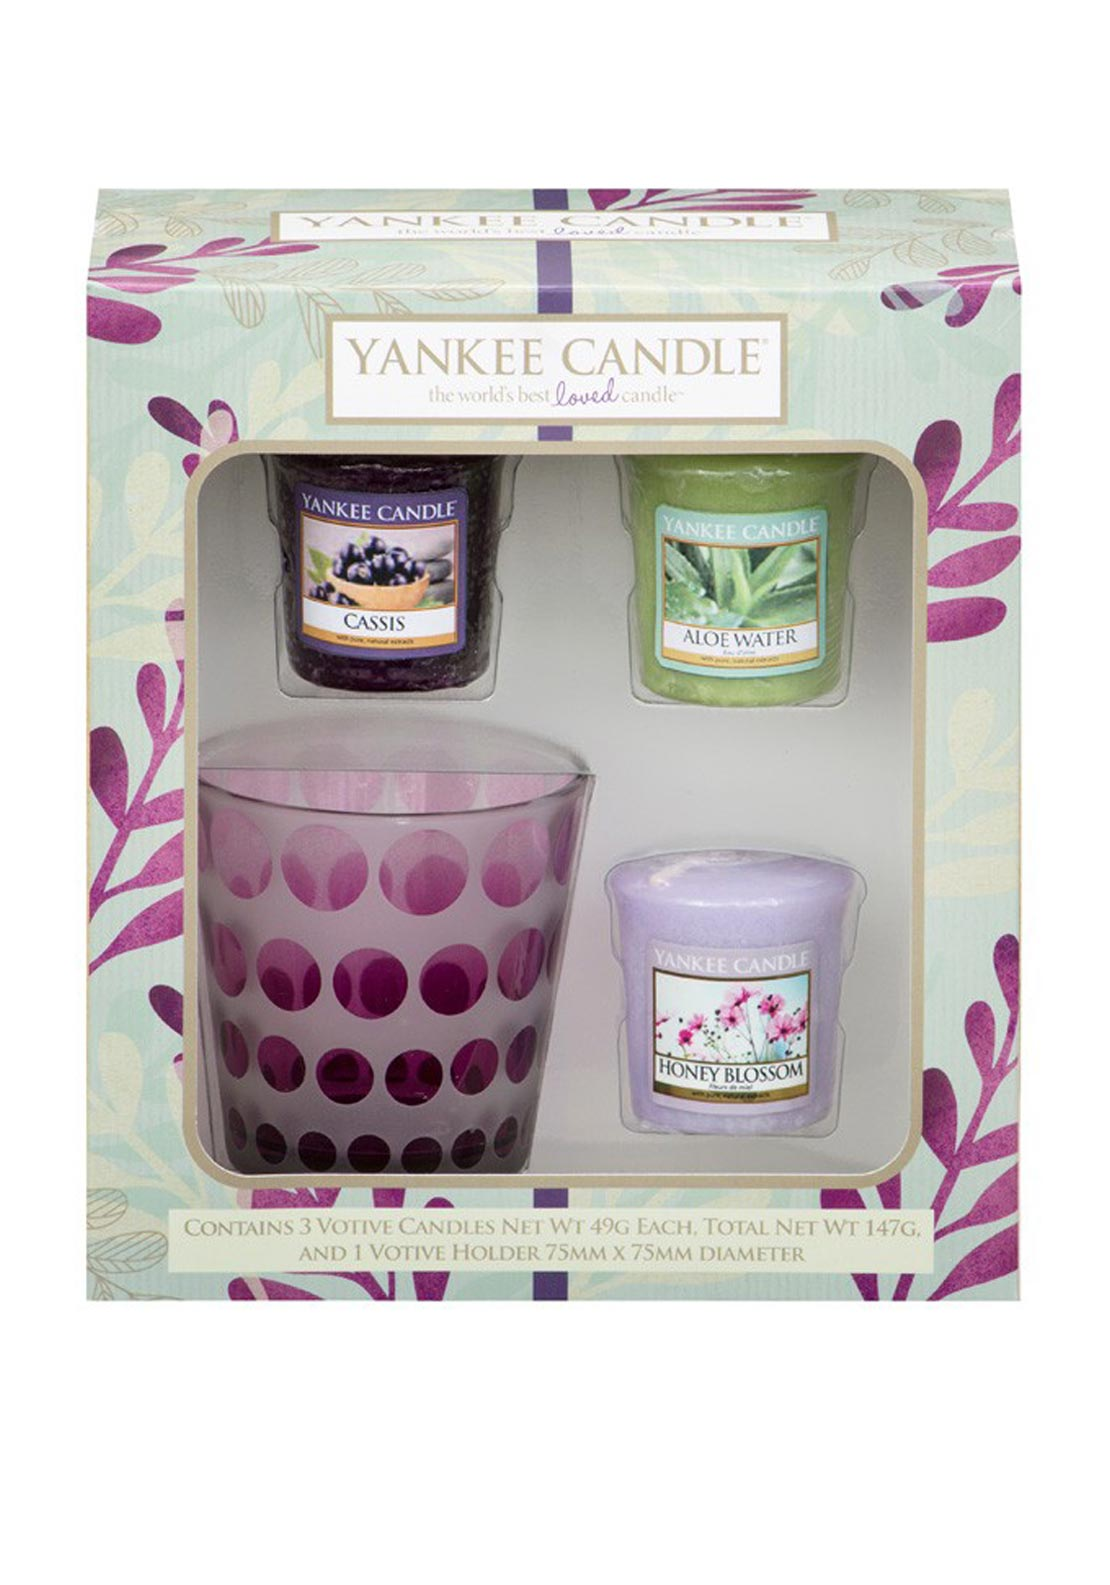 Yankee Candle Pure Essence 3 Votive Candles and 1 Votive Holder